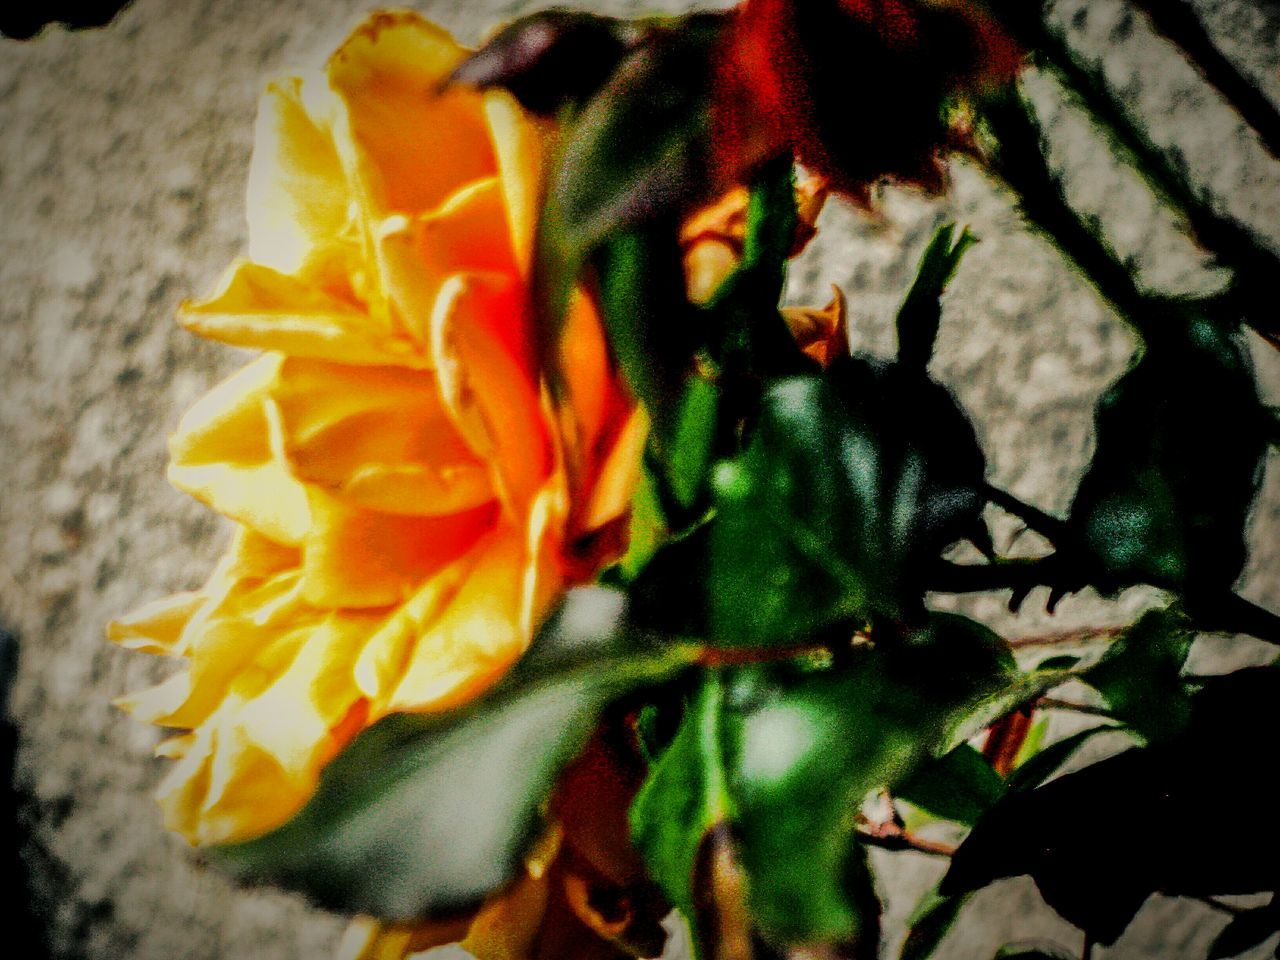 Urban Spring Fever Rosé Yellow Rose Yeah Springtime! Rose🌹 Roses Roses🌹 Flowers Flower Flower Collection Urban Gardening Garden Greenery Shades Of Yellow No People Blooming Blossom Yellow Flower Yellow Blossom Nature Nature_collection Beauty In Nature Beautiful Nature Tranquil Scene A Moment Of Zen...